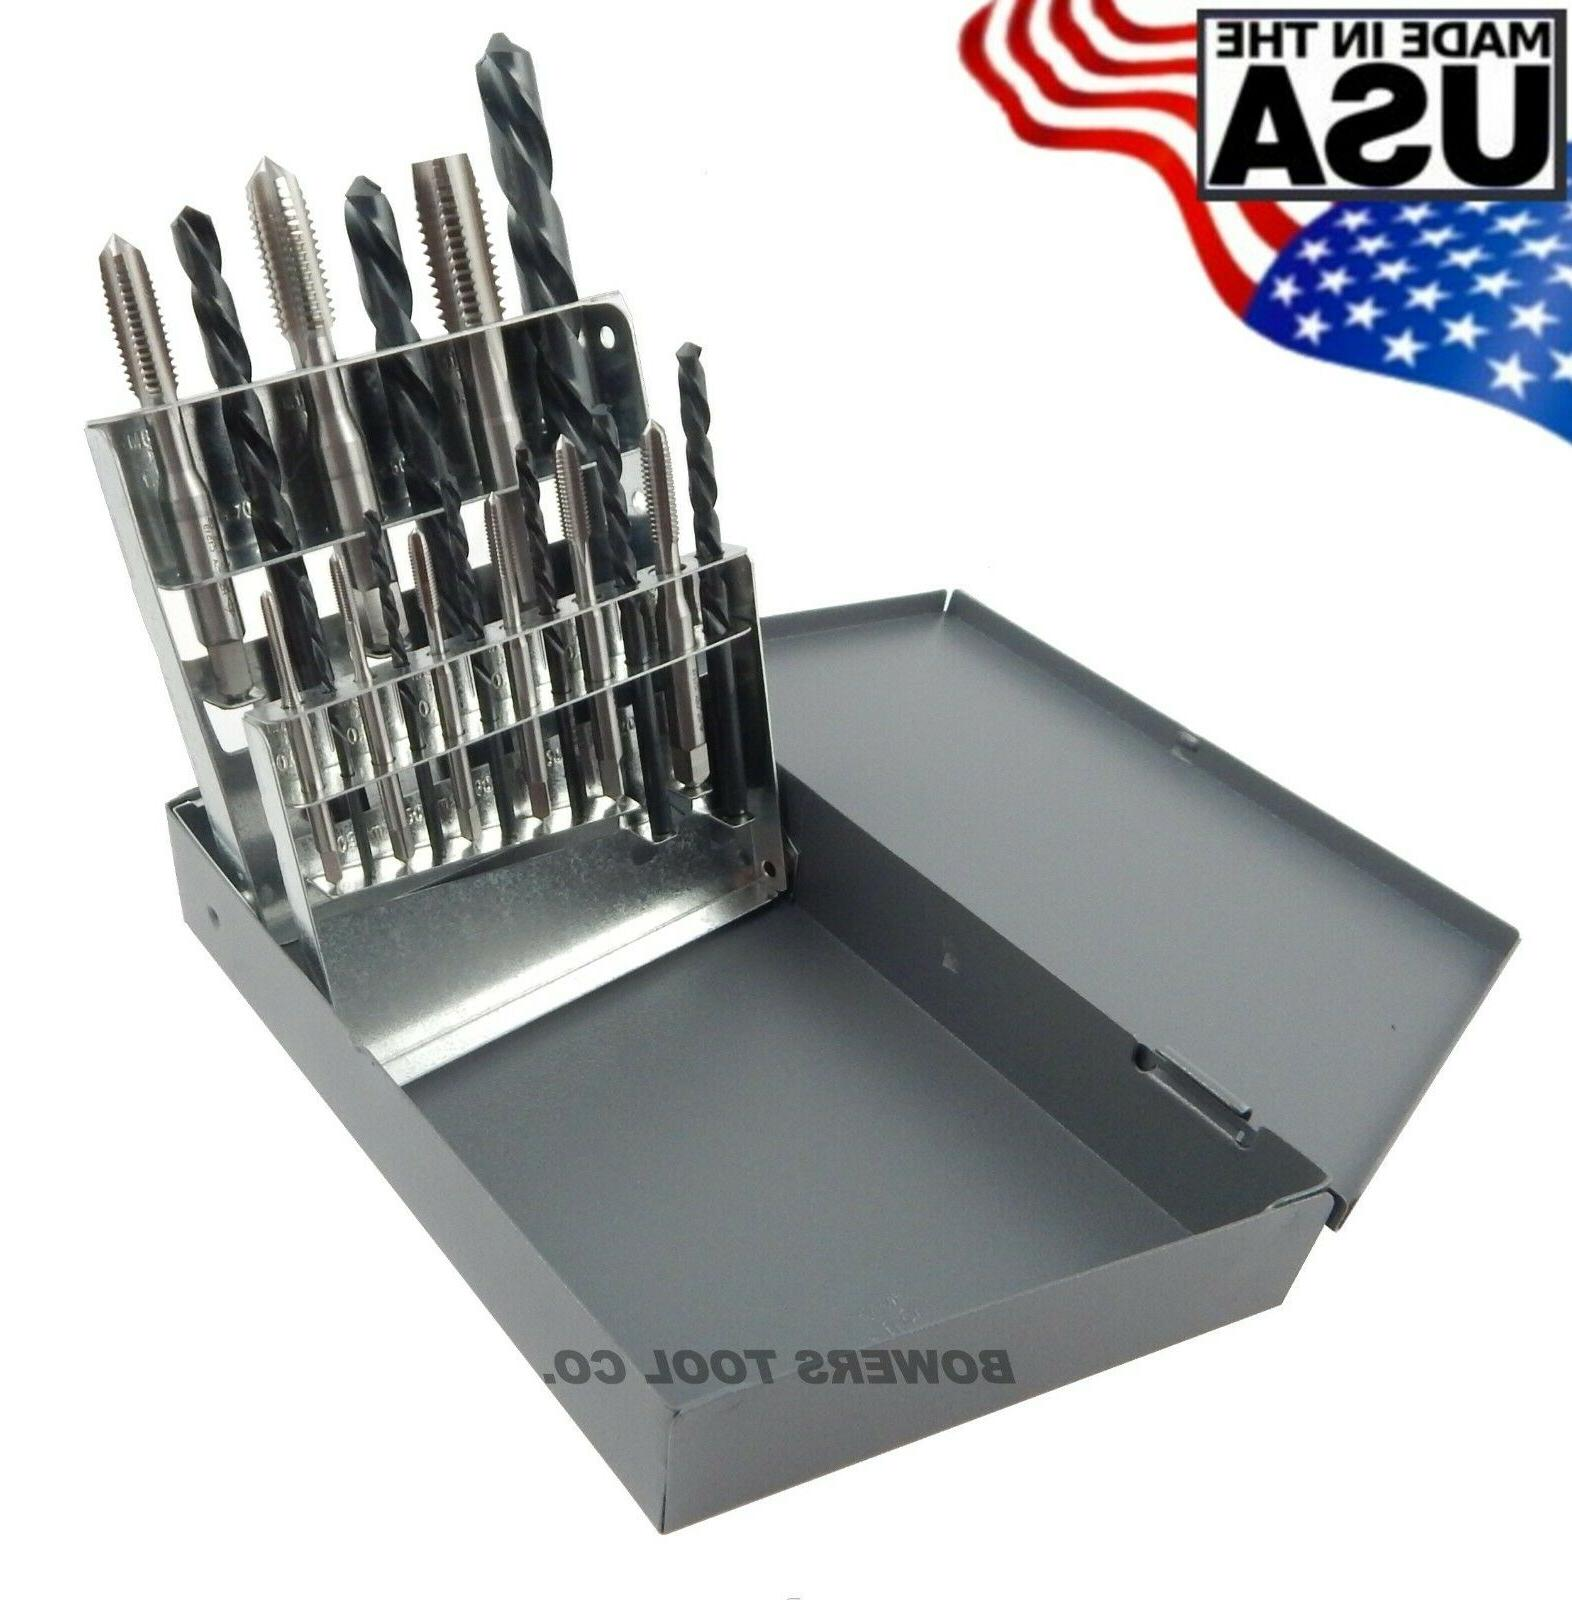 hm18 oxide drill bits uncoated